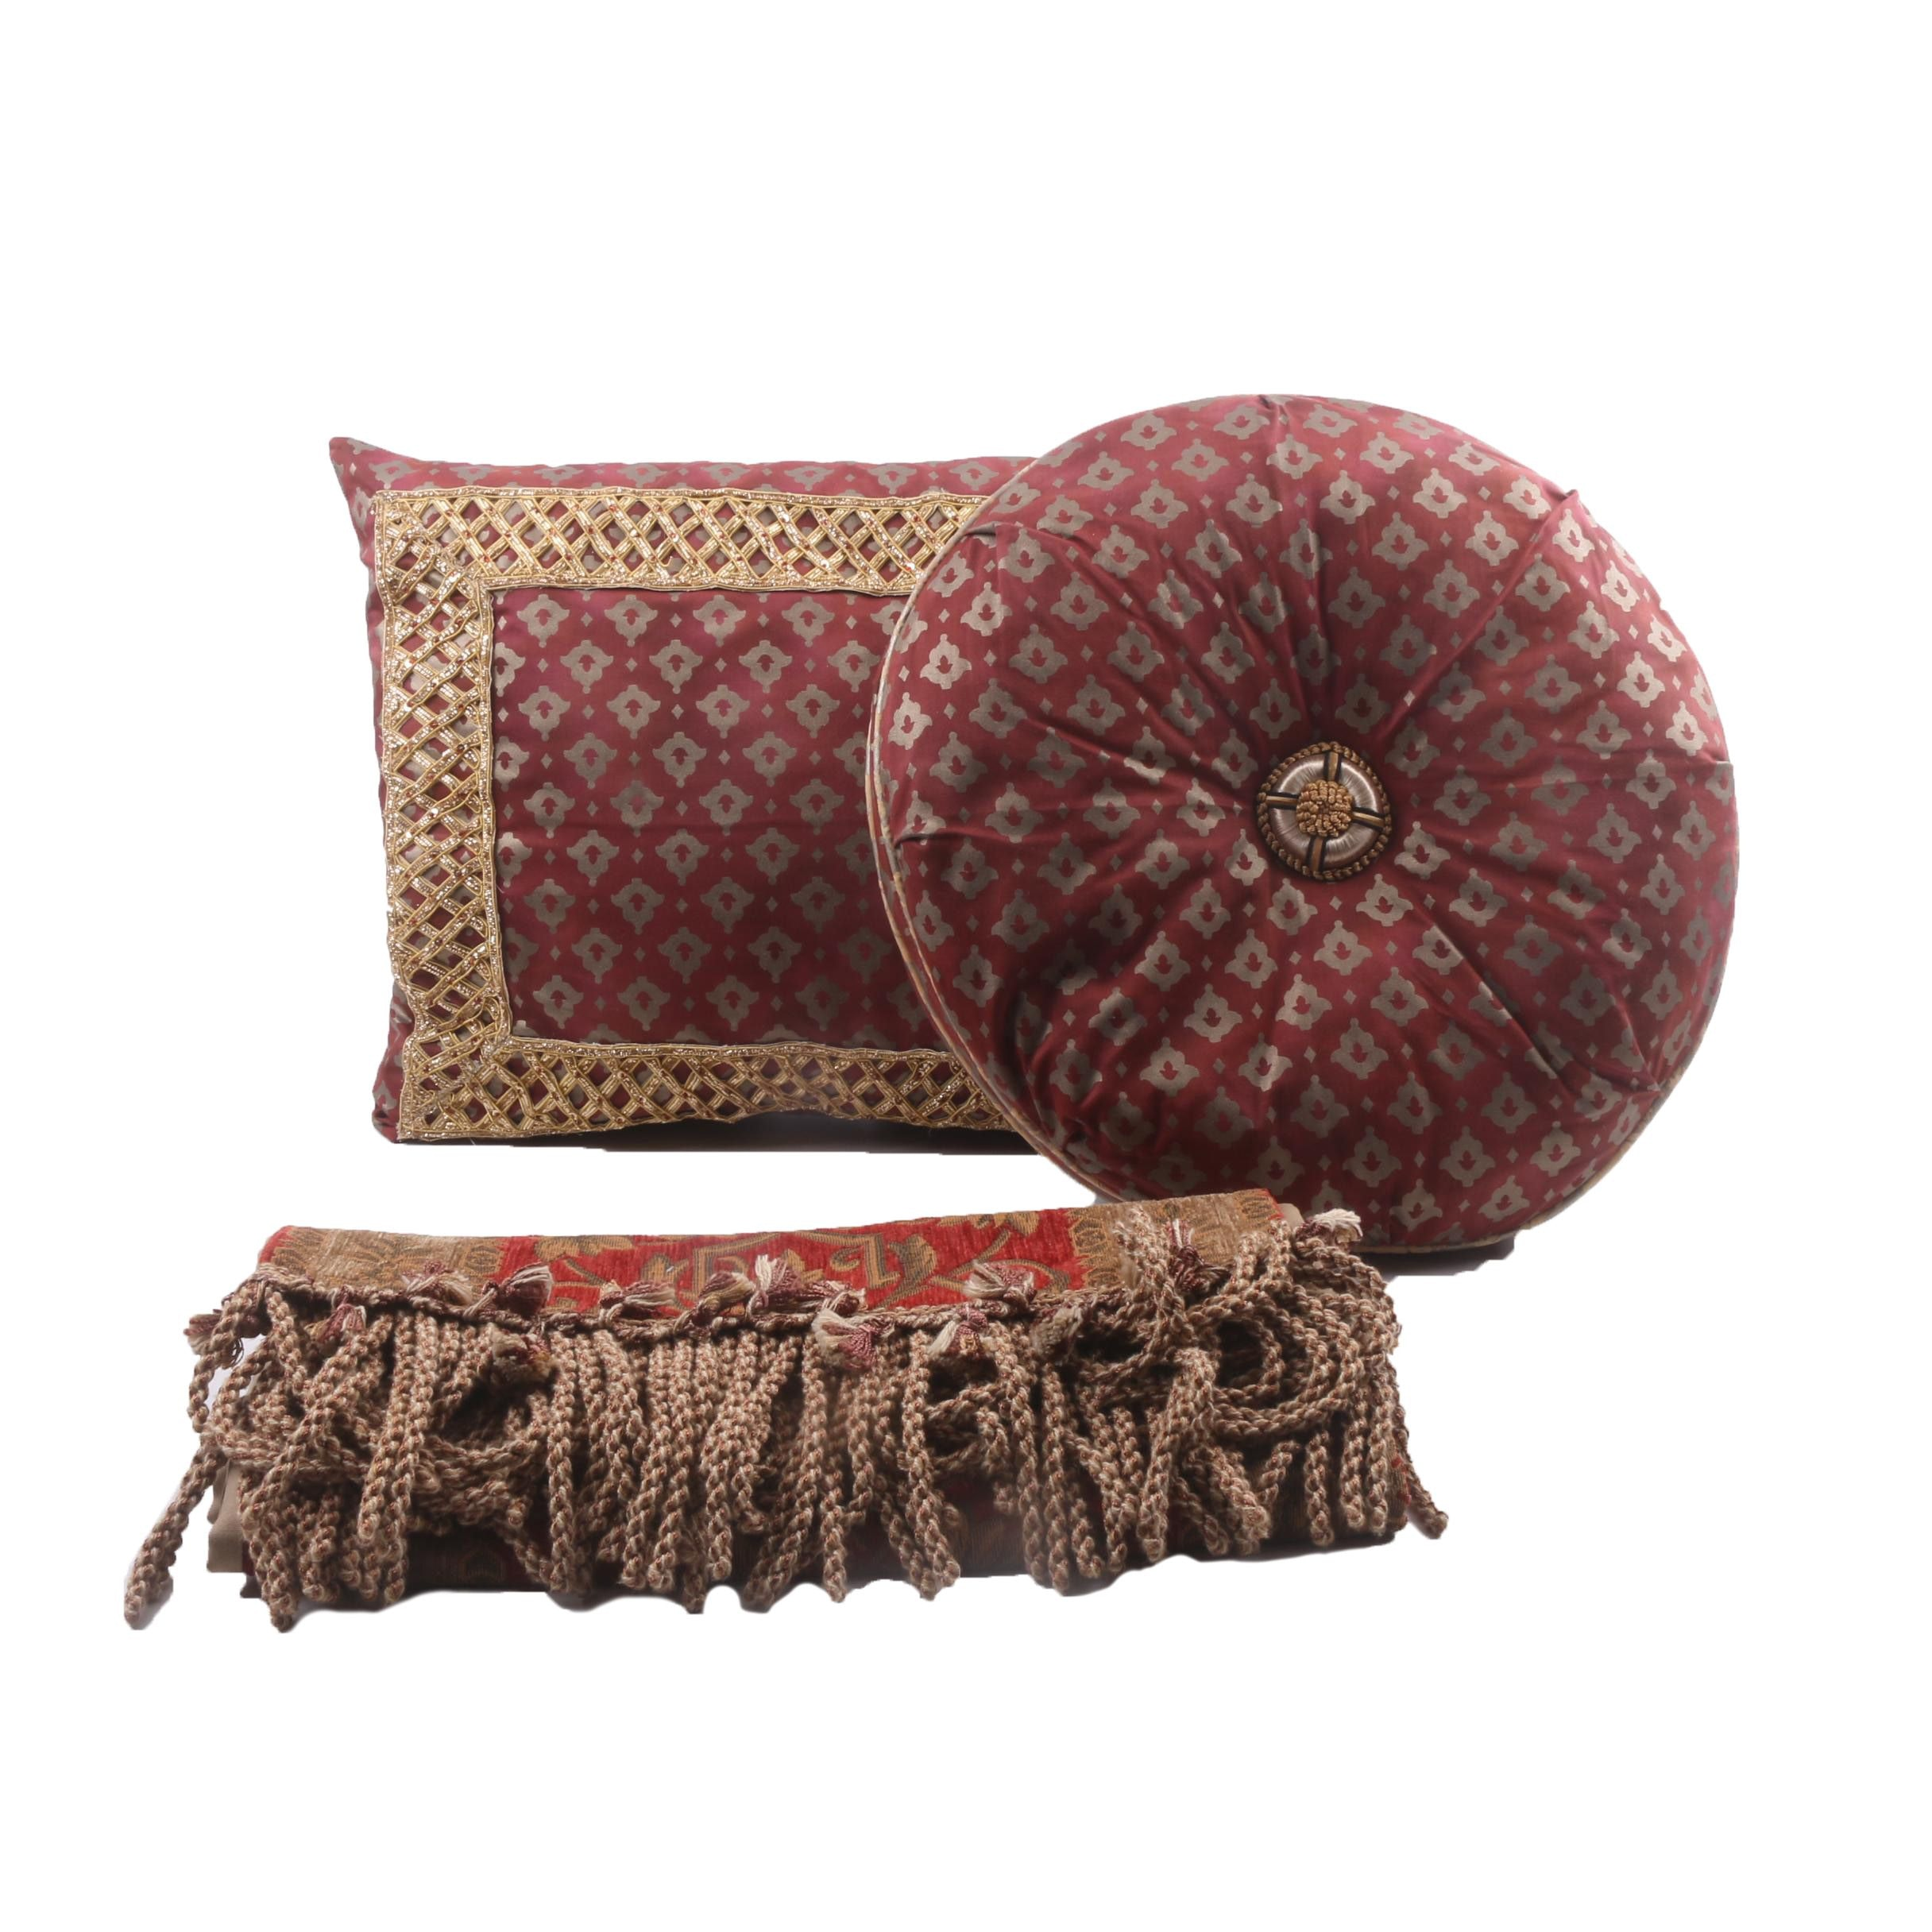 Decorative Custom Made Pillows with Beadwork and Runner